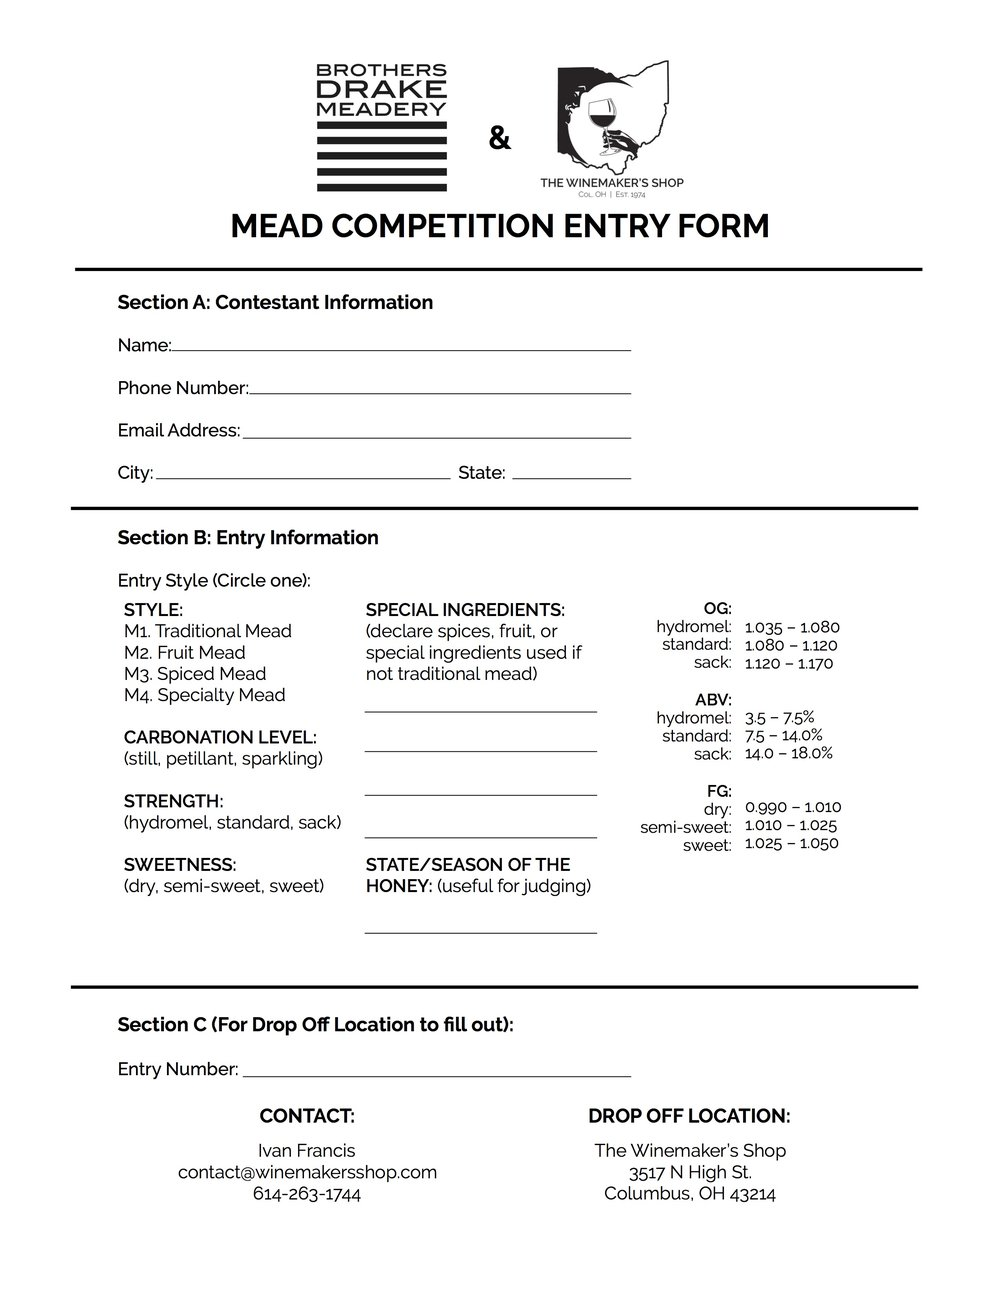 Mead-Competition-Entry-Form.jpg